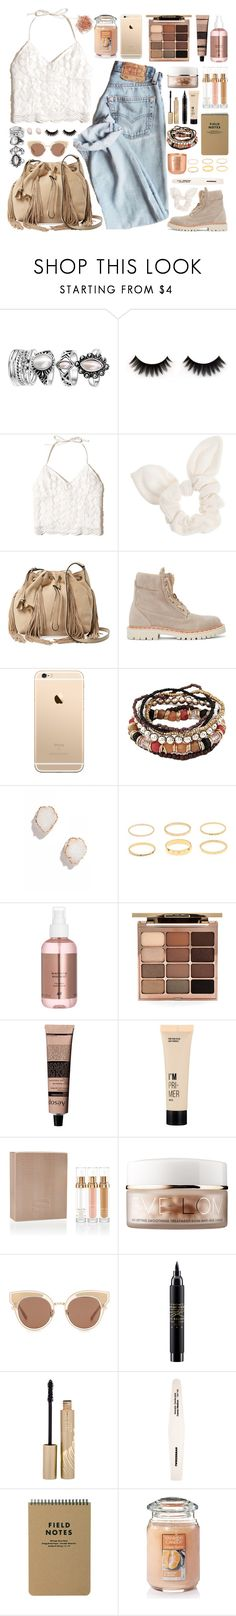 """We live alone in two different worlds, me in a fantasy, you in your memories, But we get along."" by povring ❤ liked on Polyvore featuring Hollister Co., Dorothy Perkins, Diane Von Furstenberg, Balmain, Kendra Scott, Stila, Aesop, Charlotte Russe, Sisley and Eve Lom"